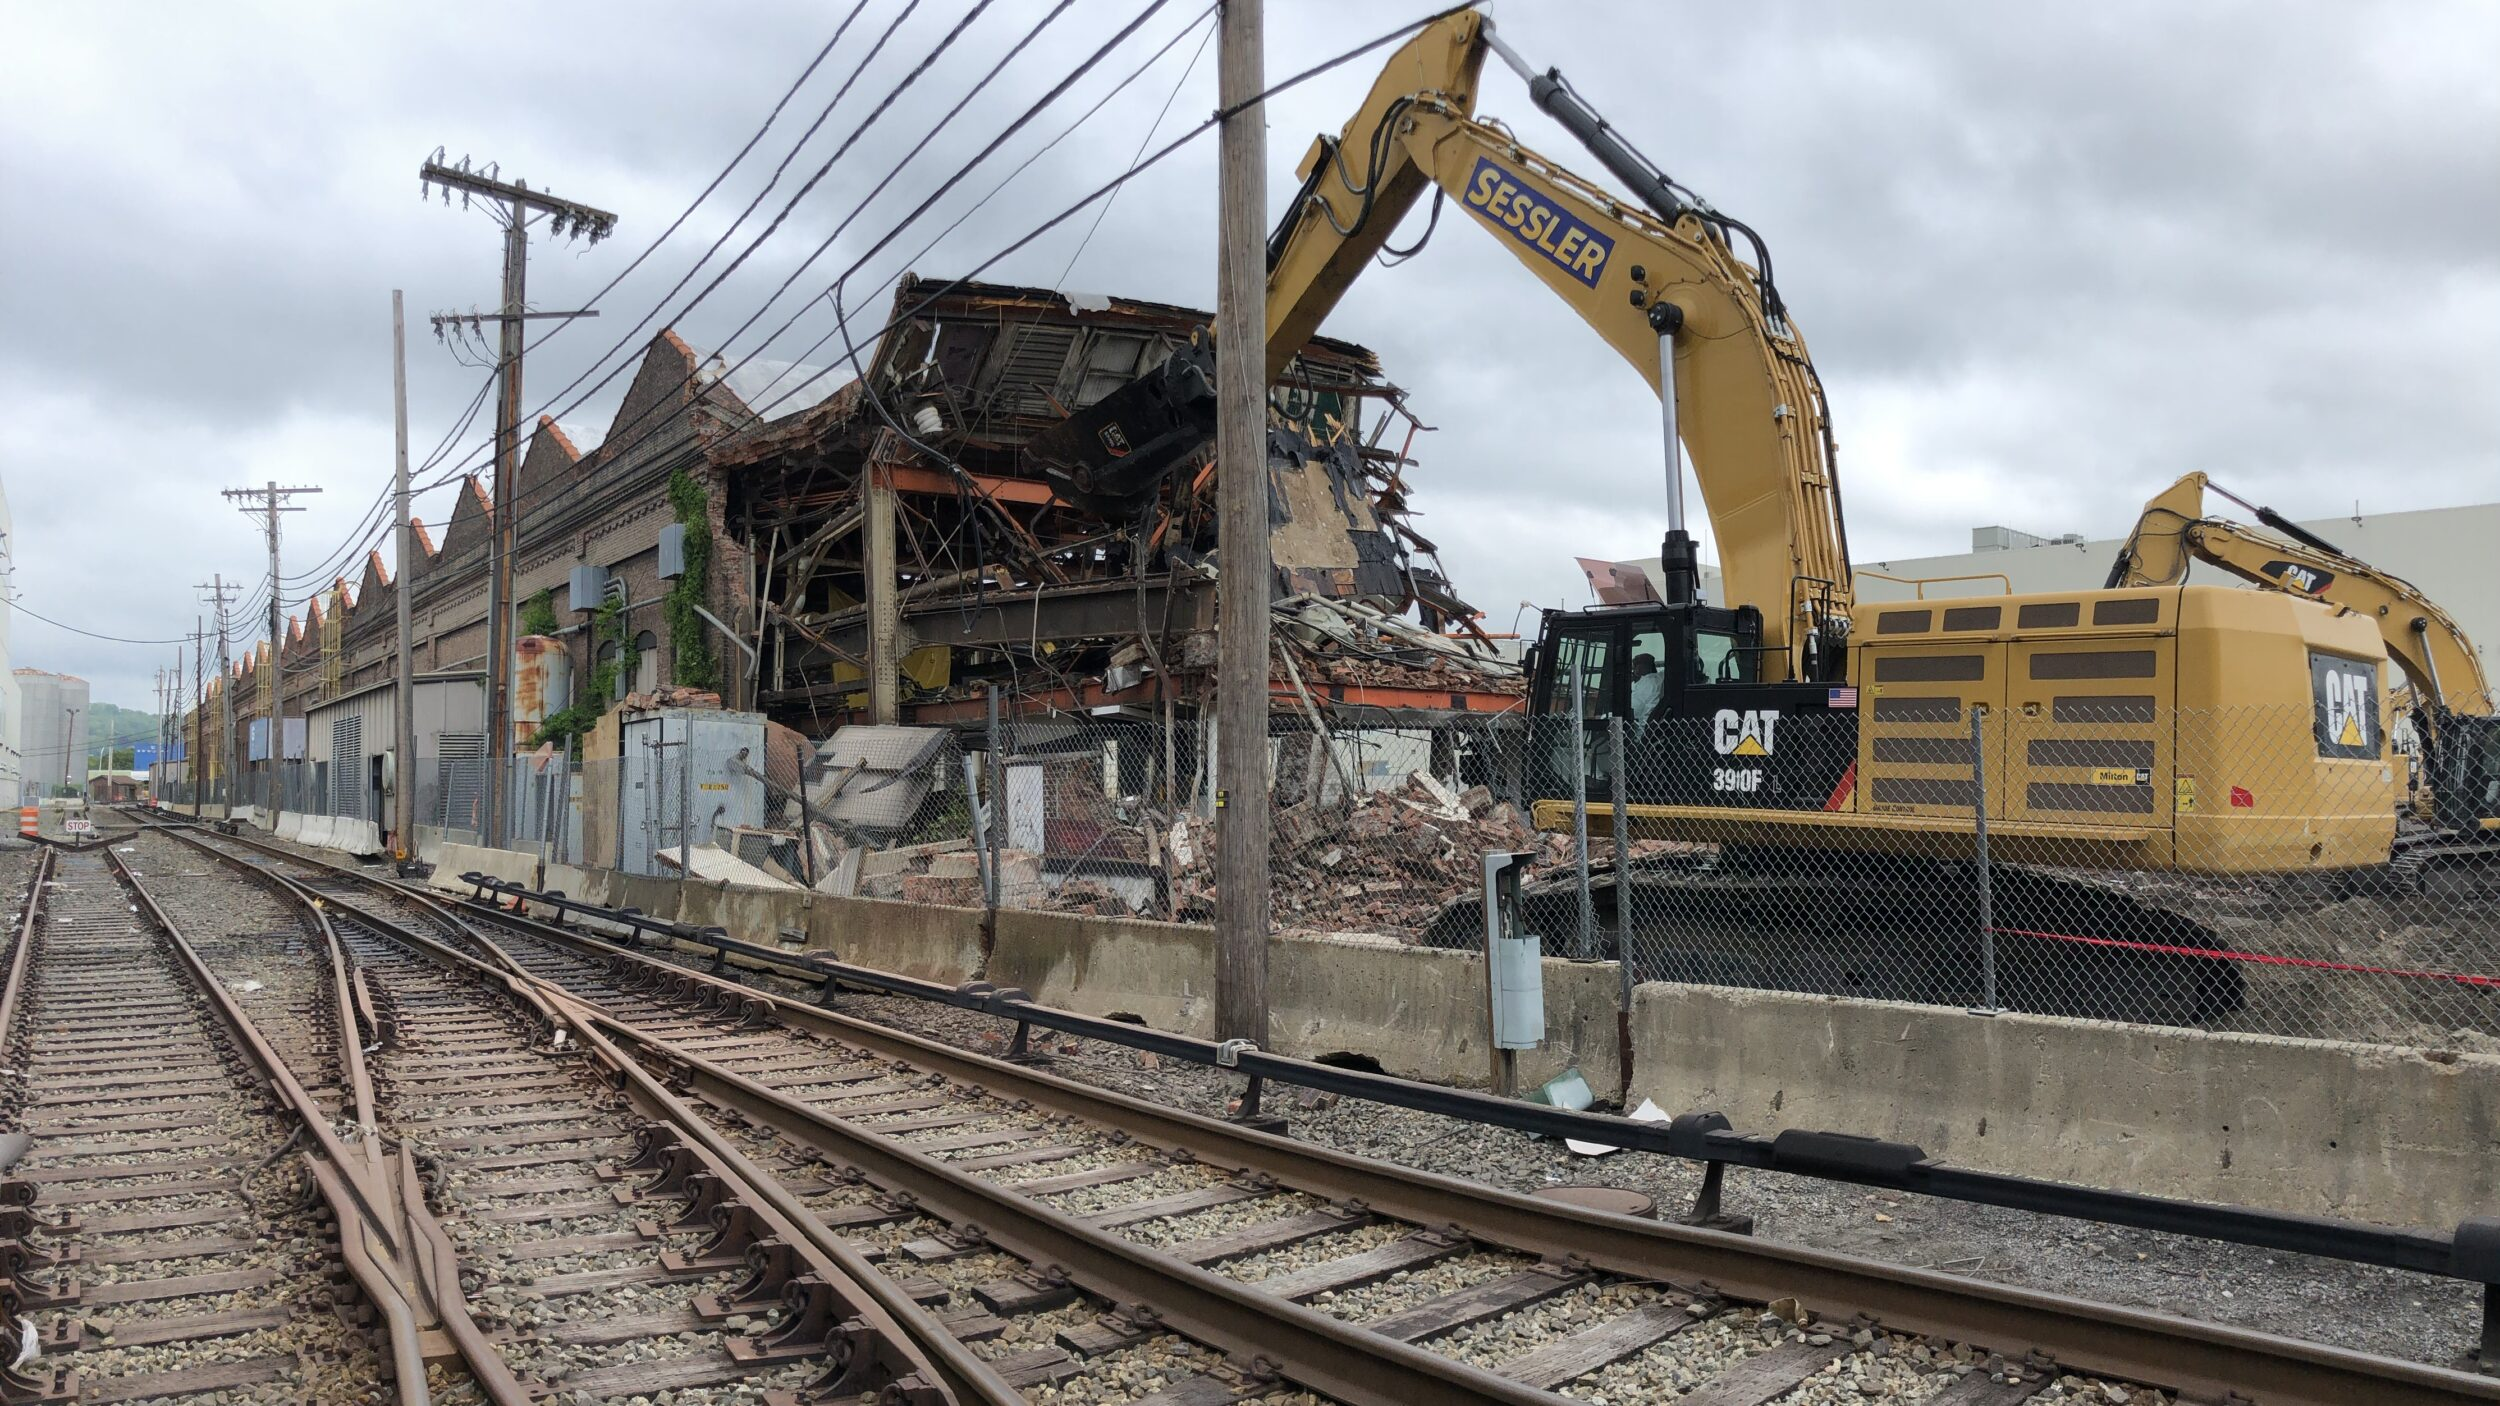 Excavator demoing building along railroad